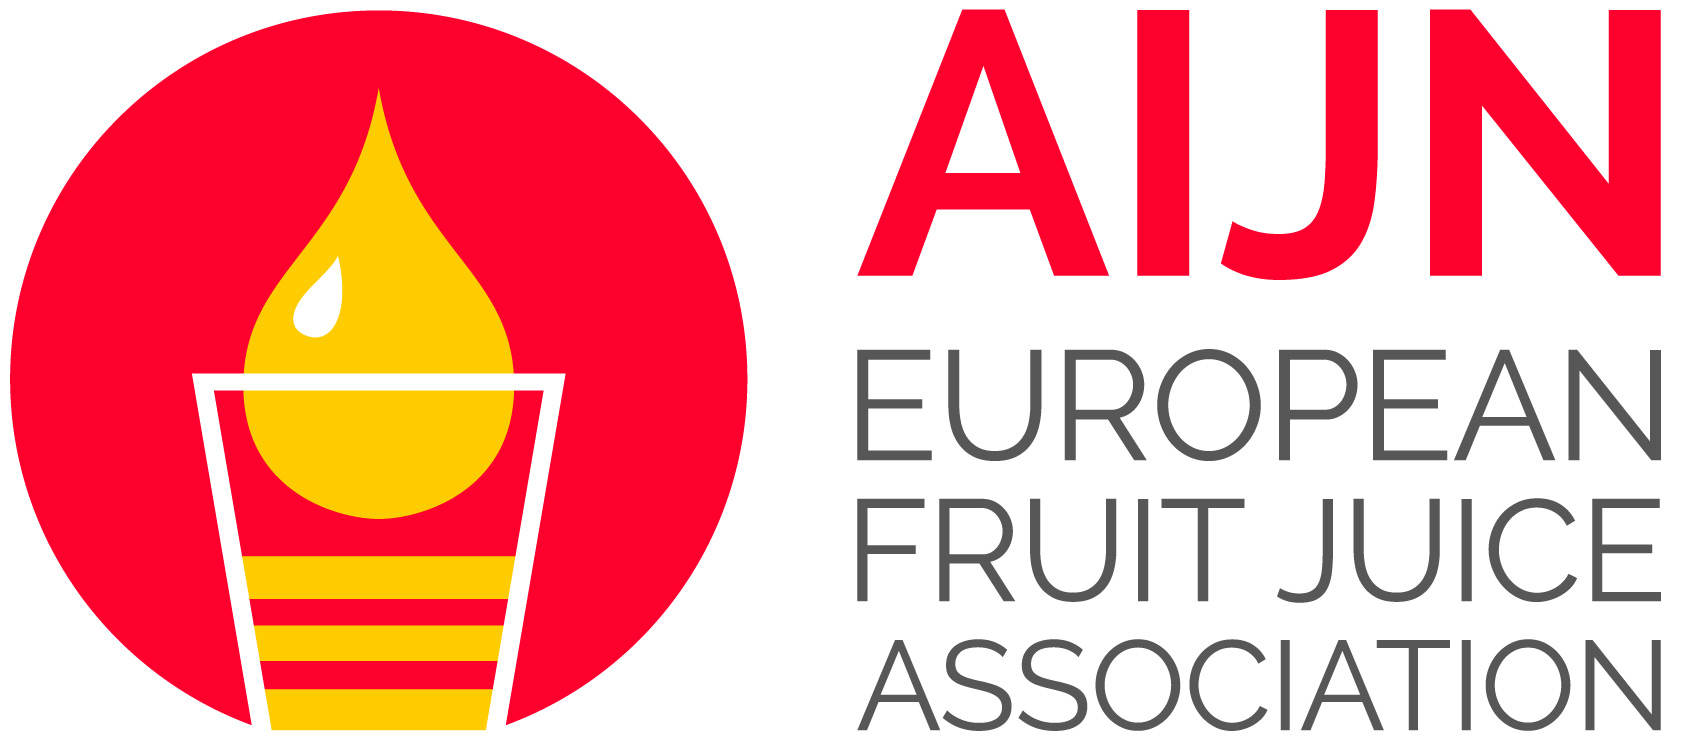 AIJN European Fruit Association